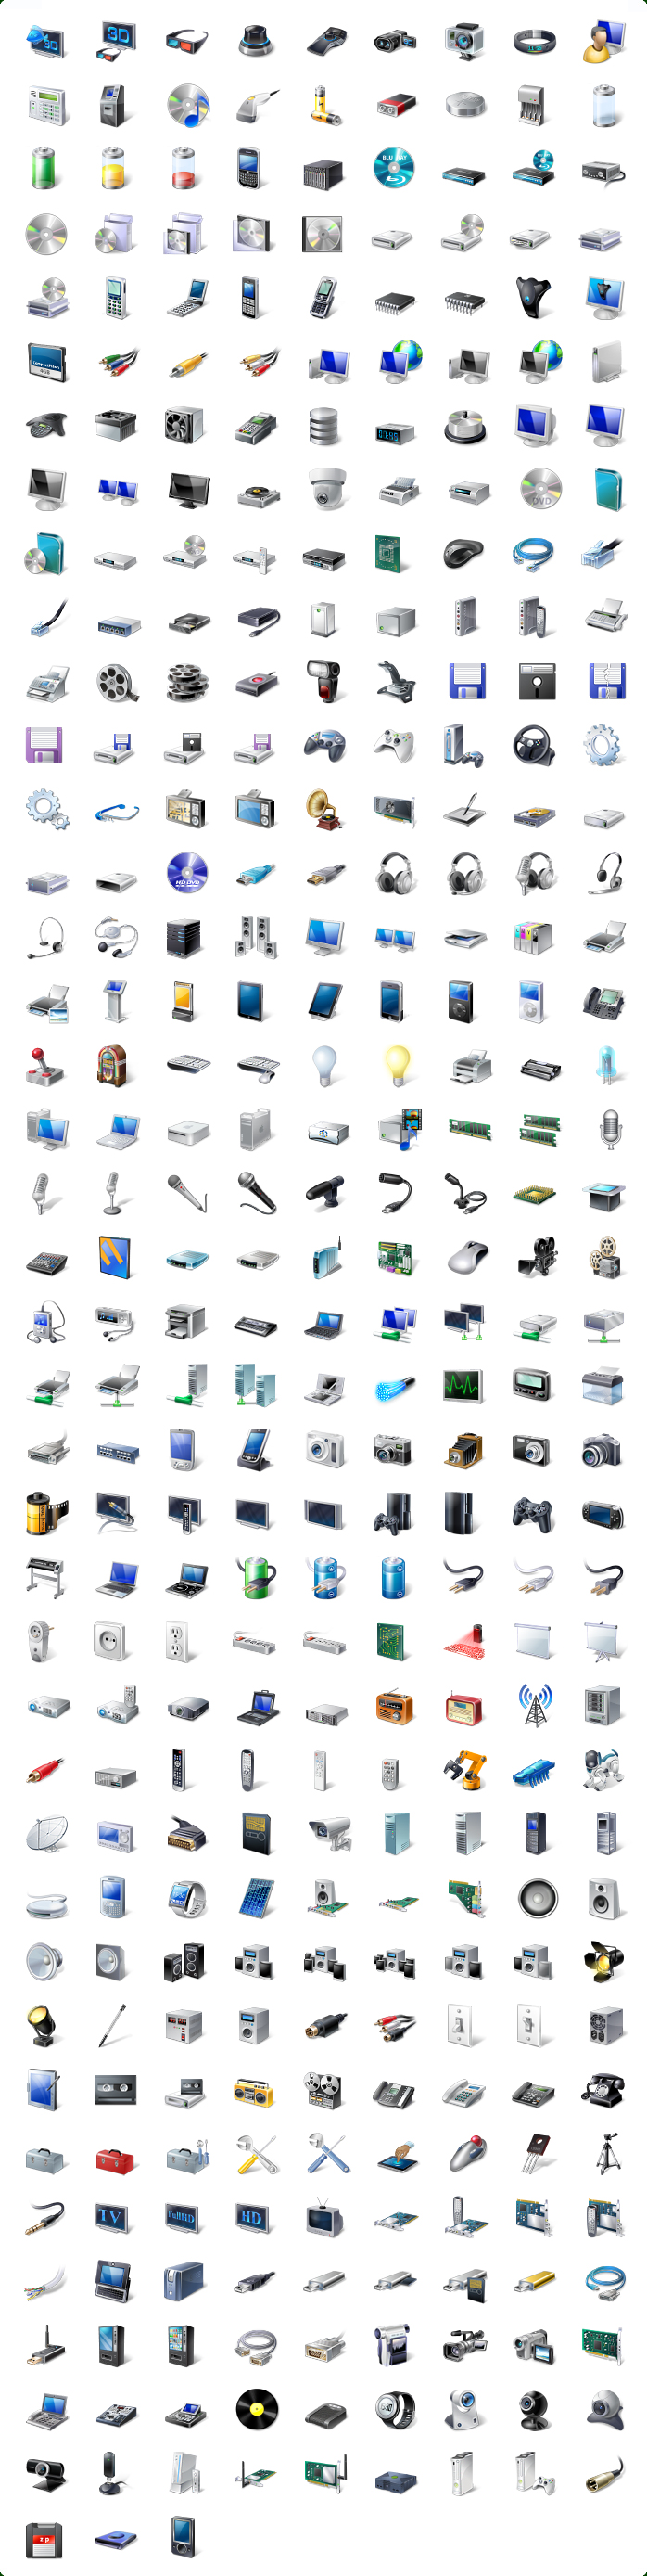 Hardware Icons, Devices Icons